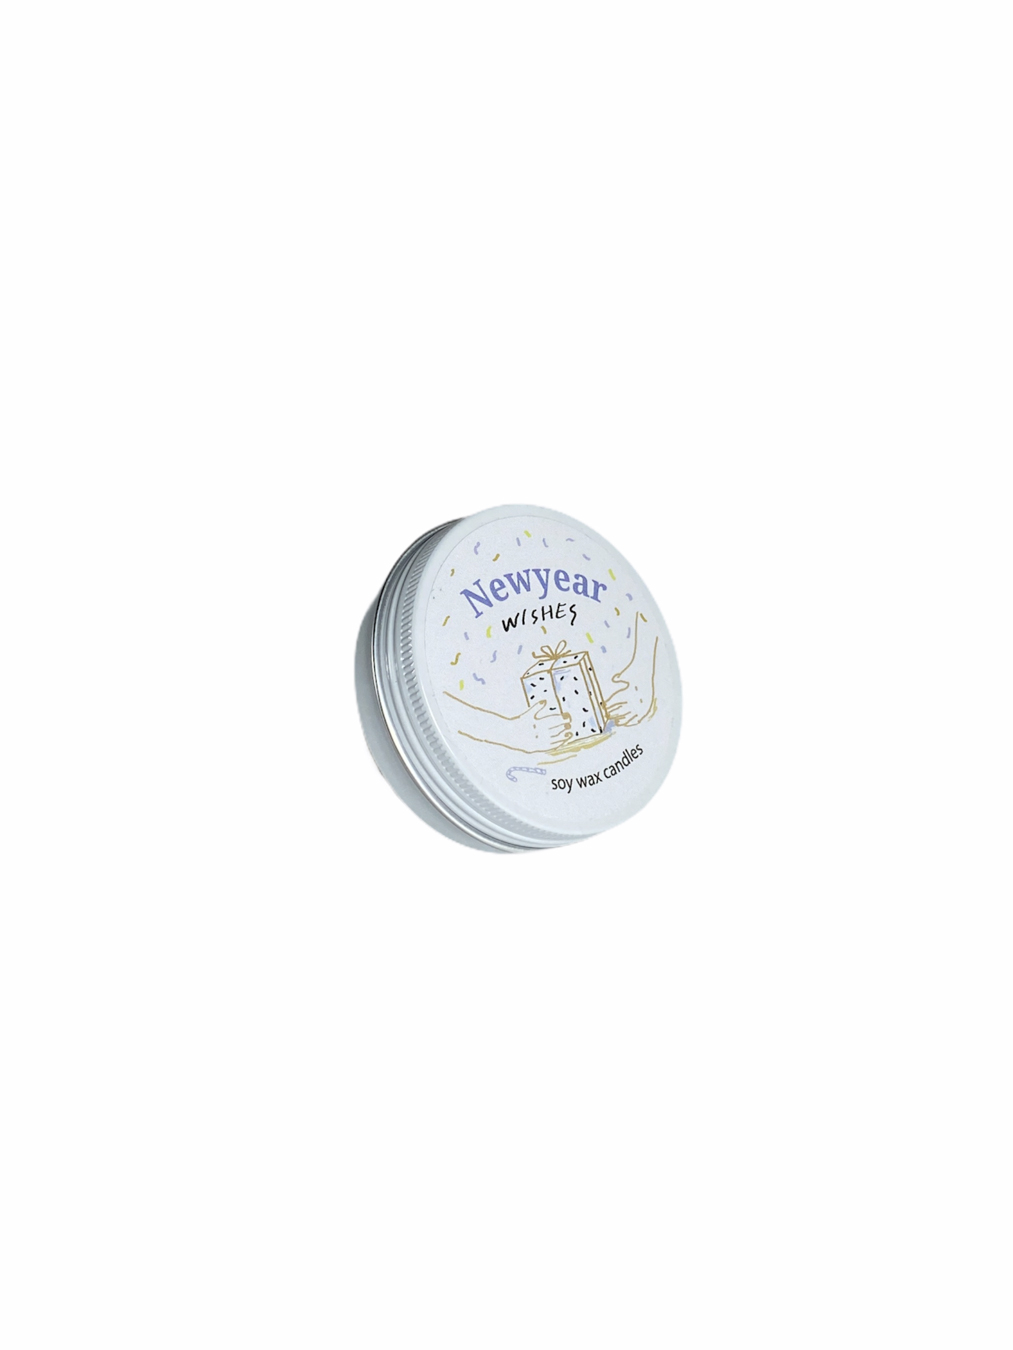 Newyear Wishes Soy Wax Candle